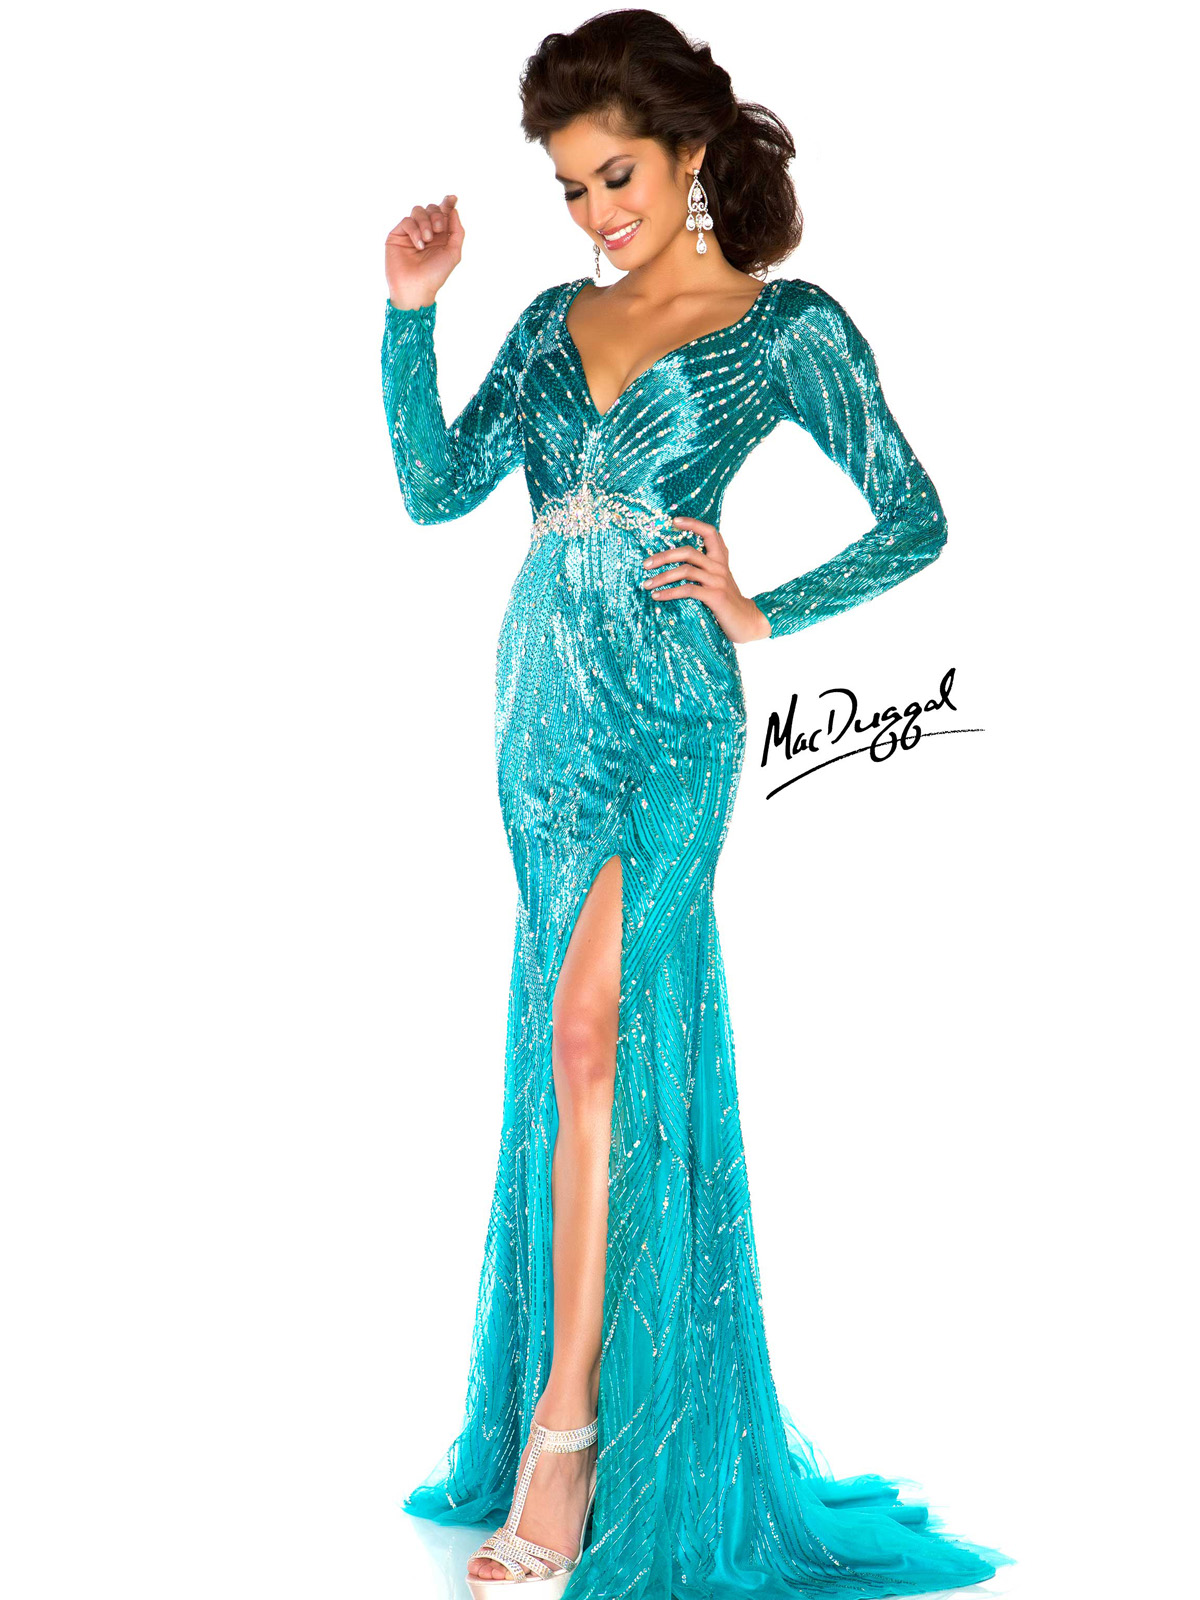 012dff88e2b Jaw Dropping Fully Beaded Fitted Gown With High Thigh Split Mac Duggal  Pageant 76513P